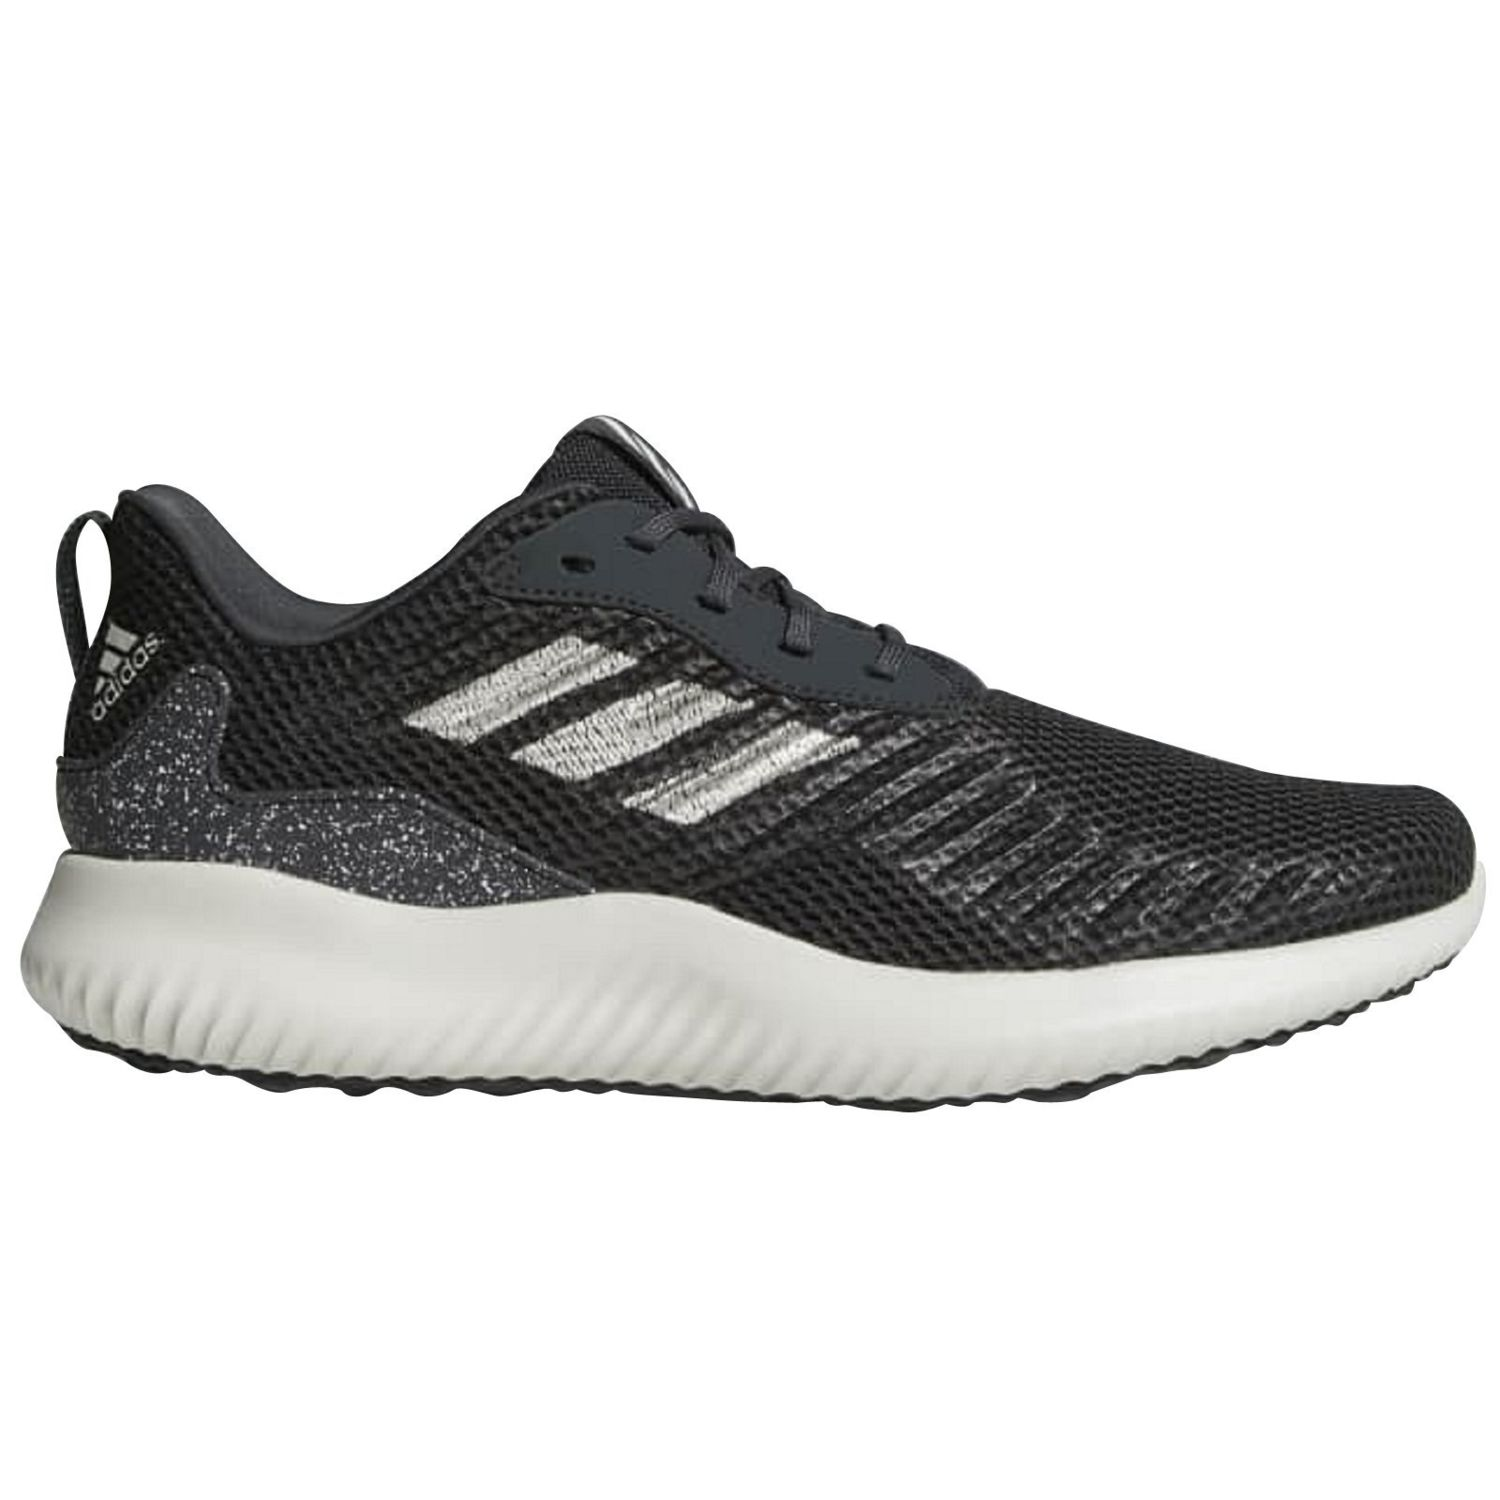 Adidas - Alphabounce Rc Gris - pas cher Achat / Vente Chaussures running